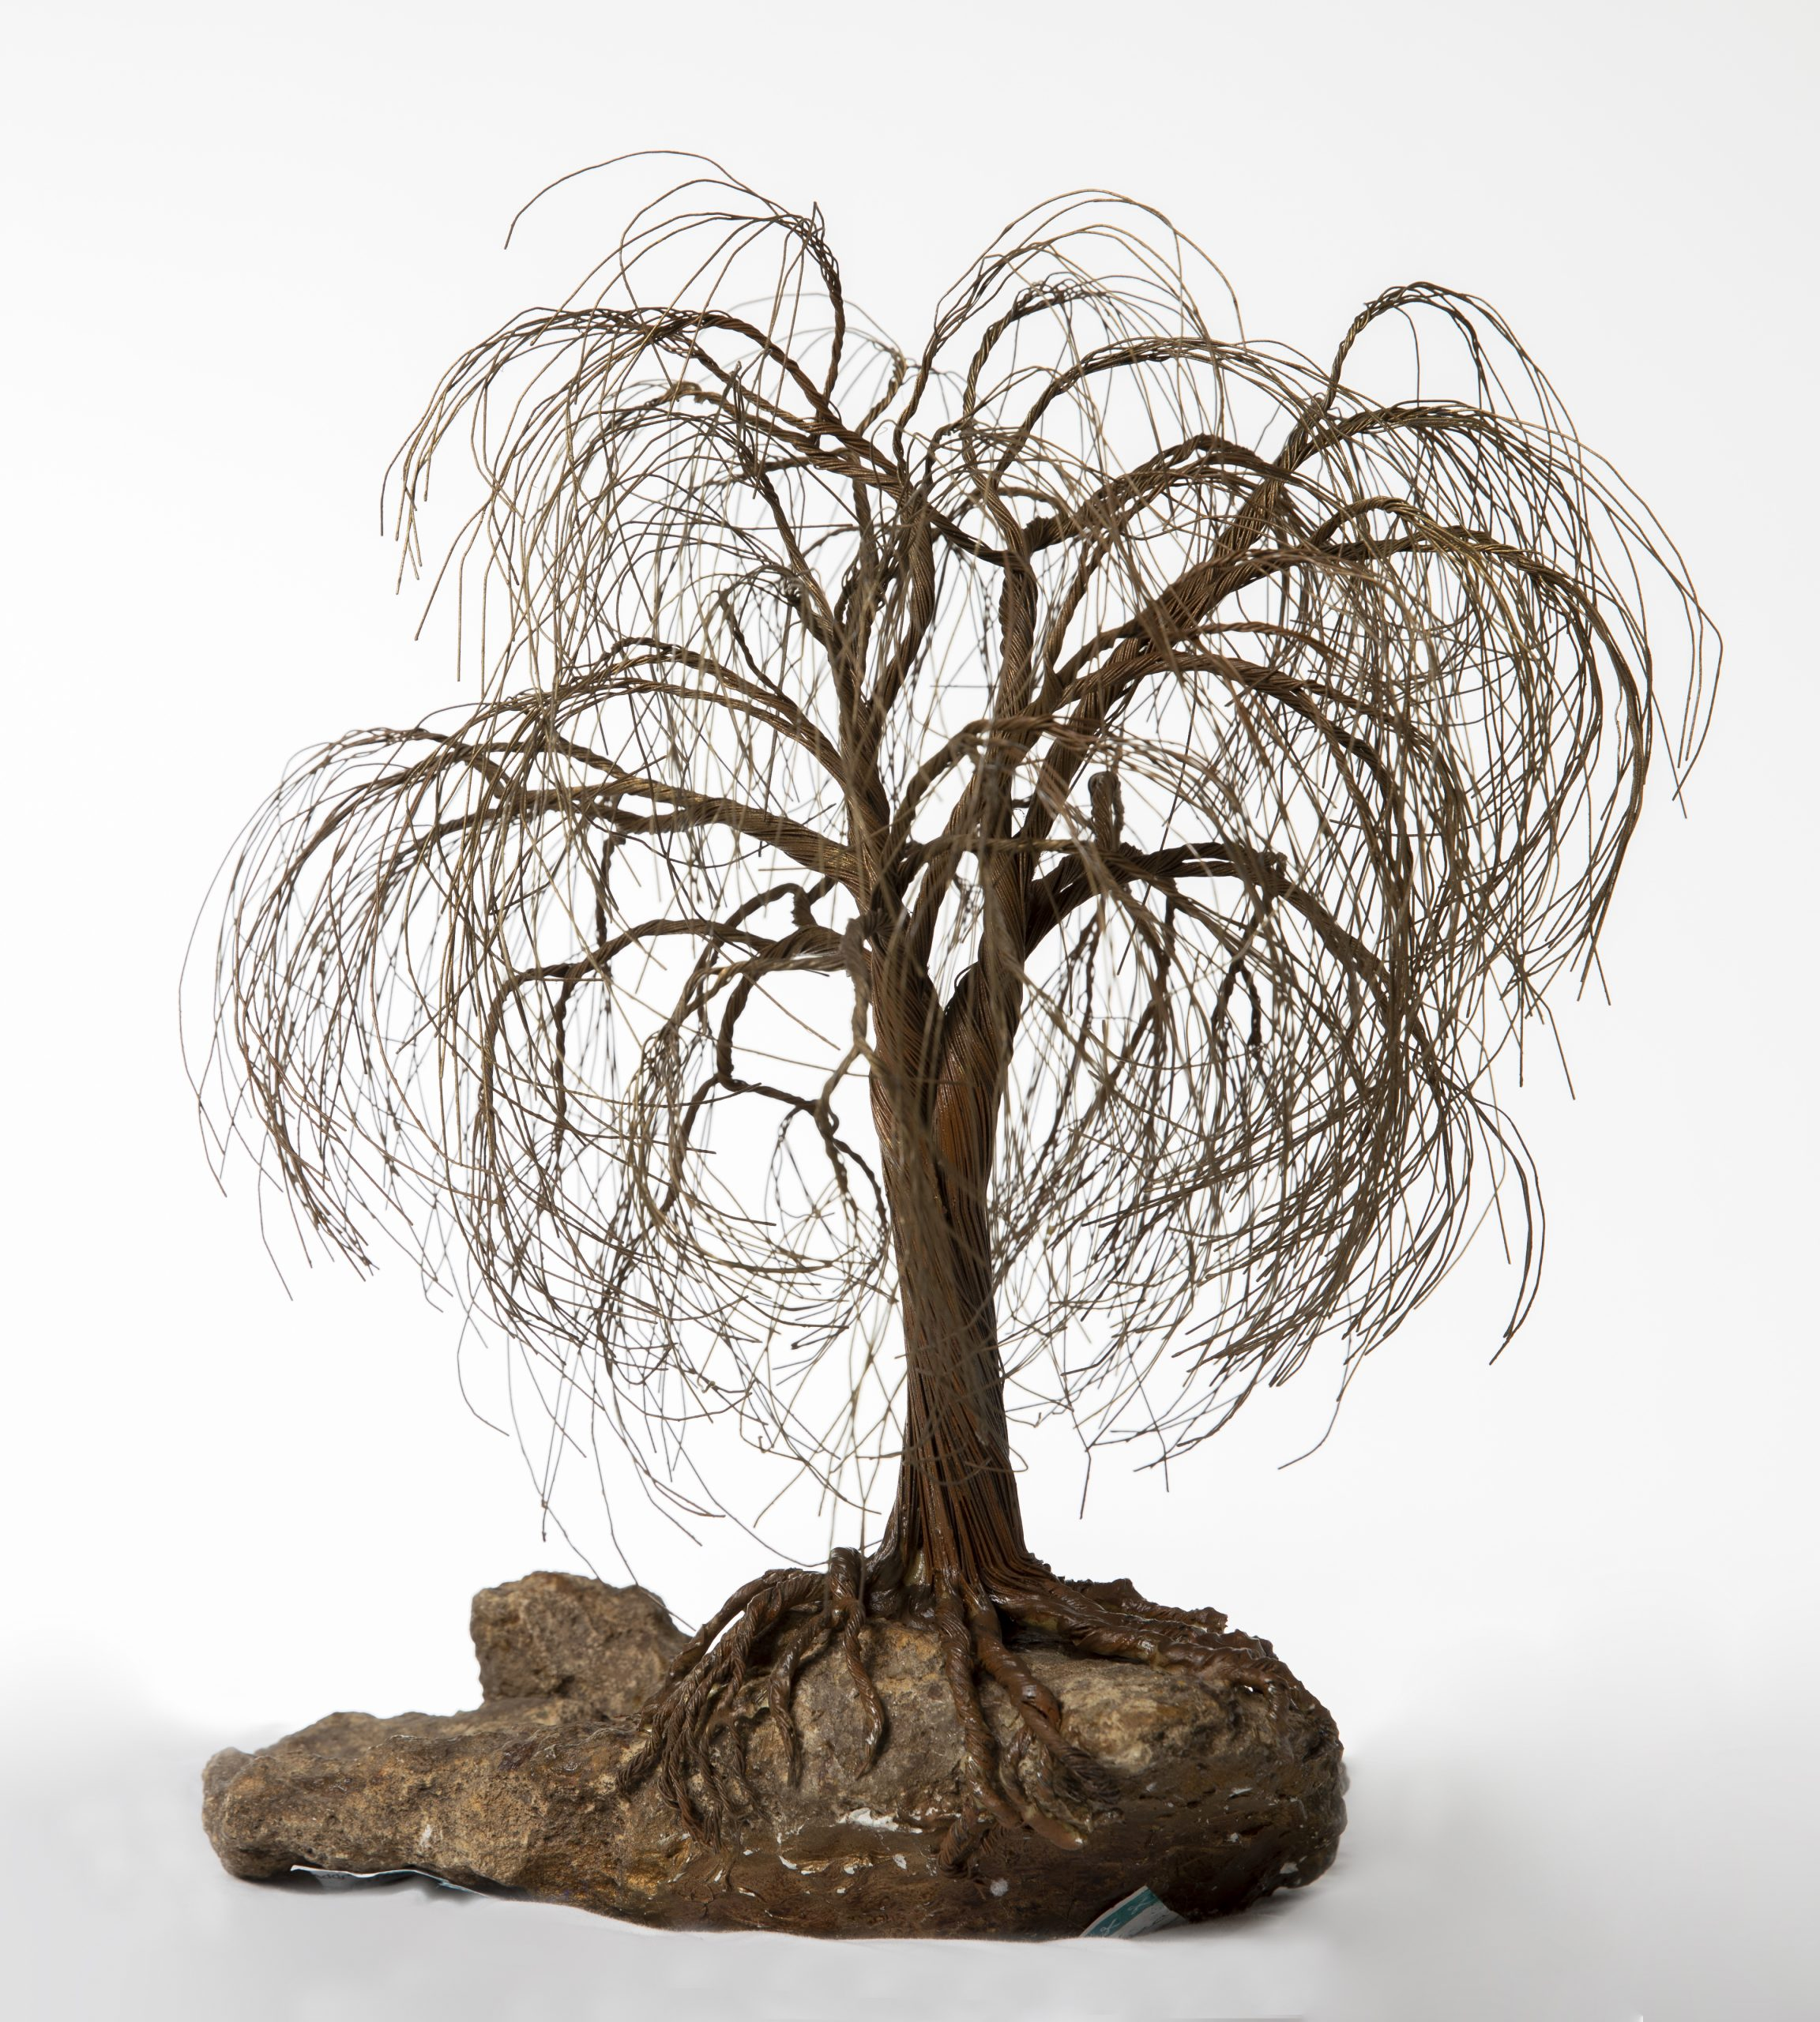 A sculpture of a willow tree hanging onto a rock made of a red-brown wire